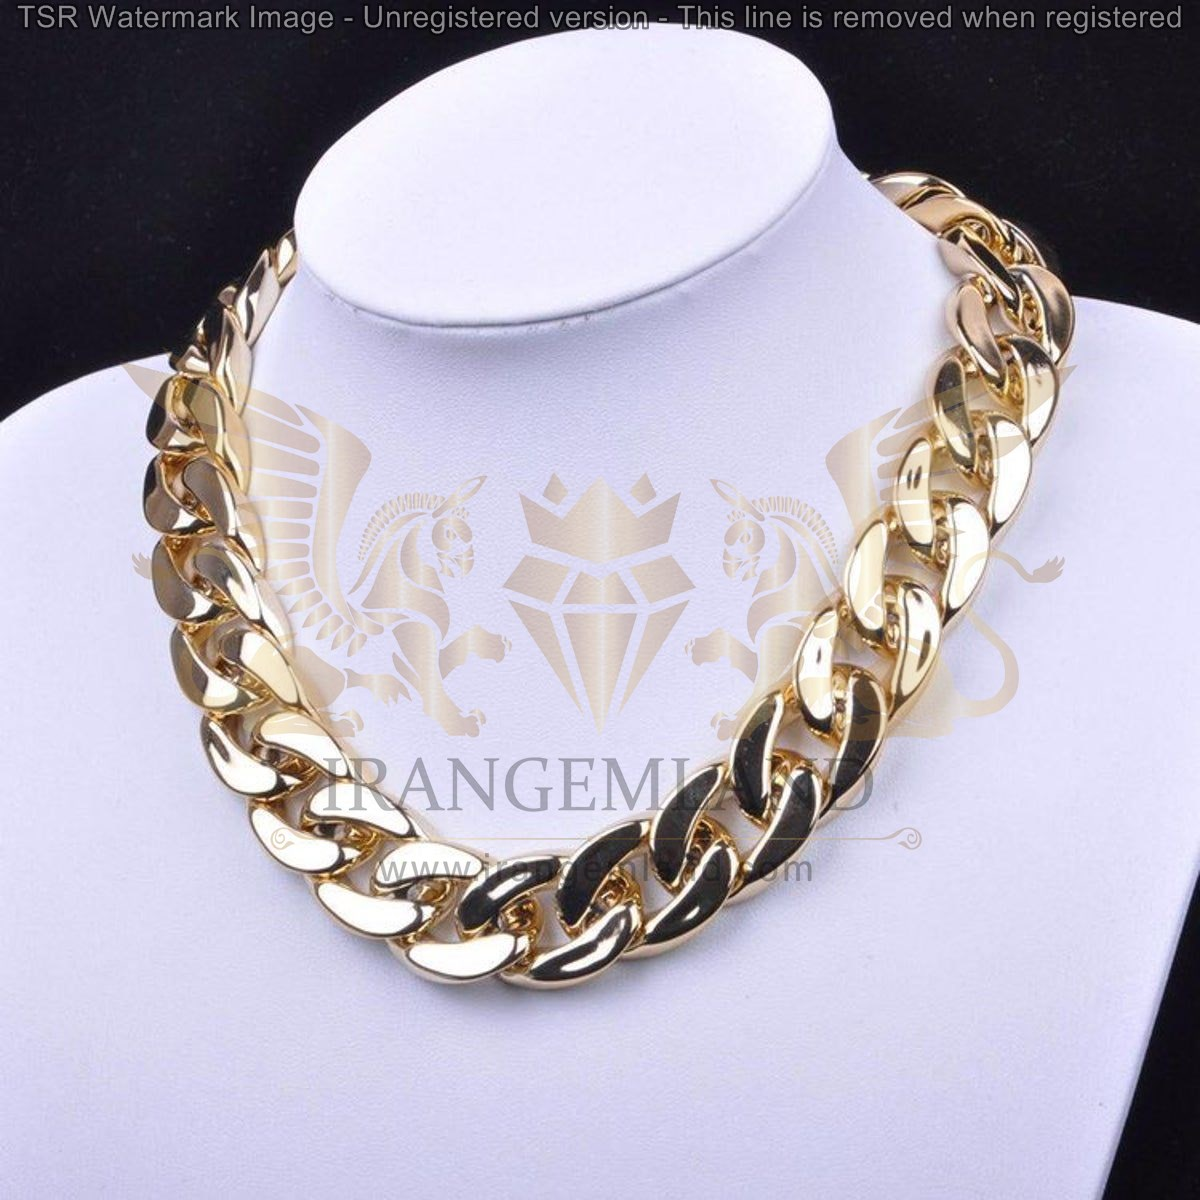 Silver chains code 0052